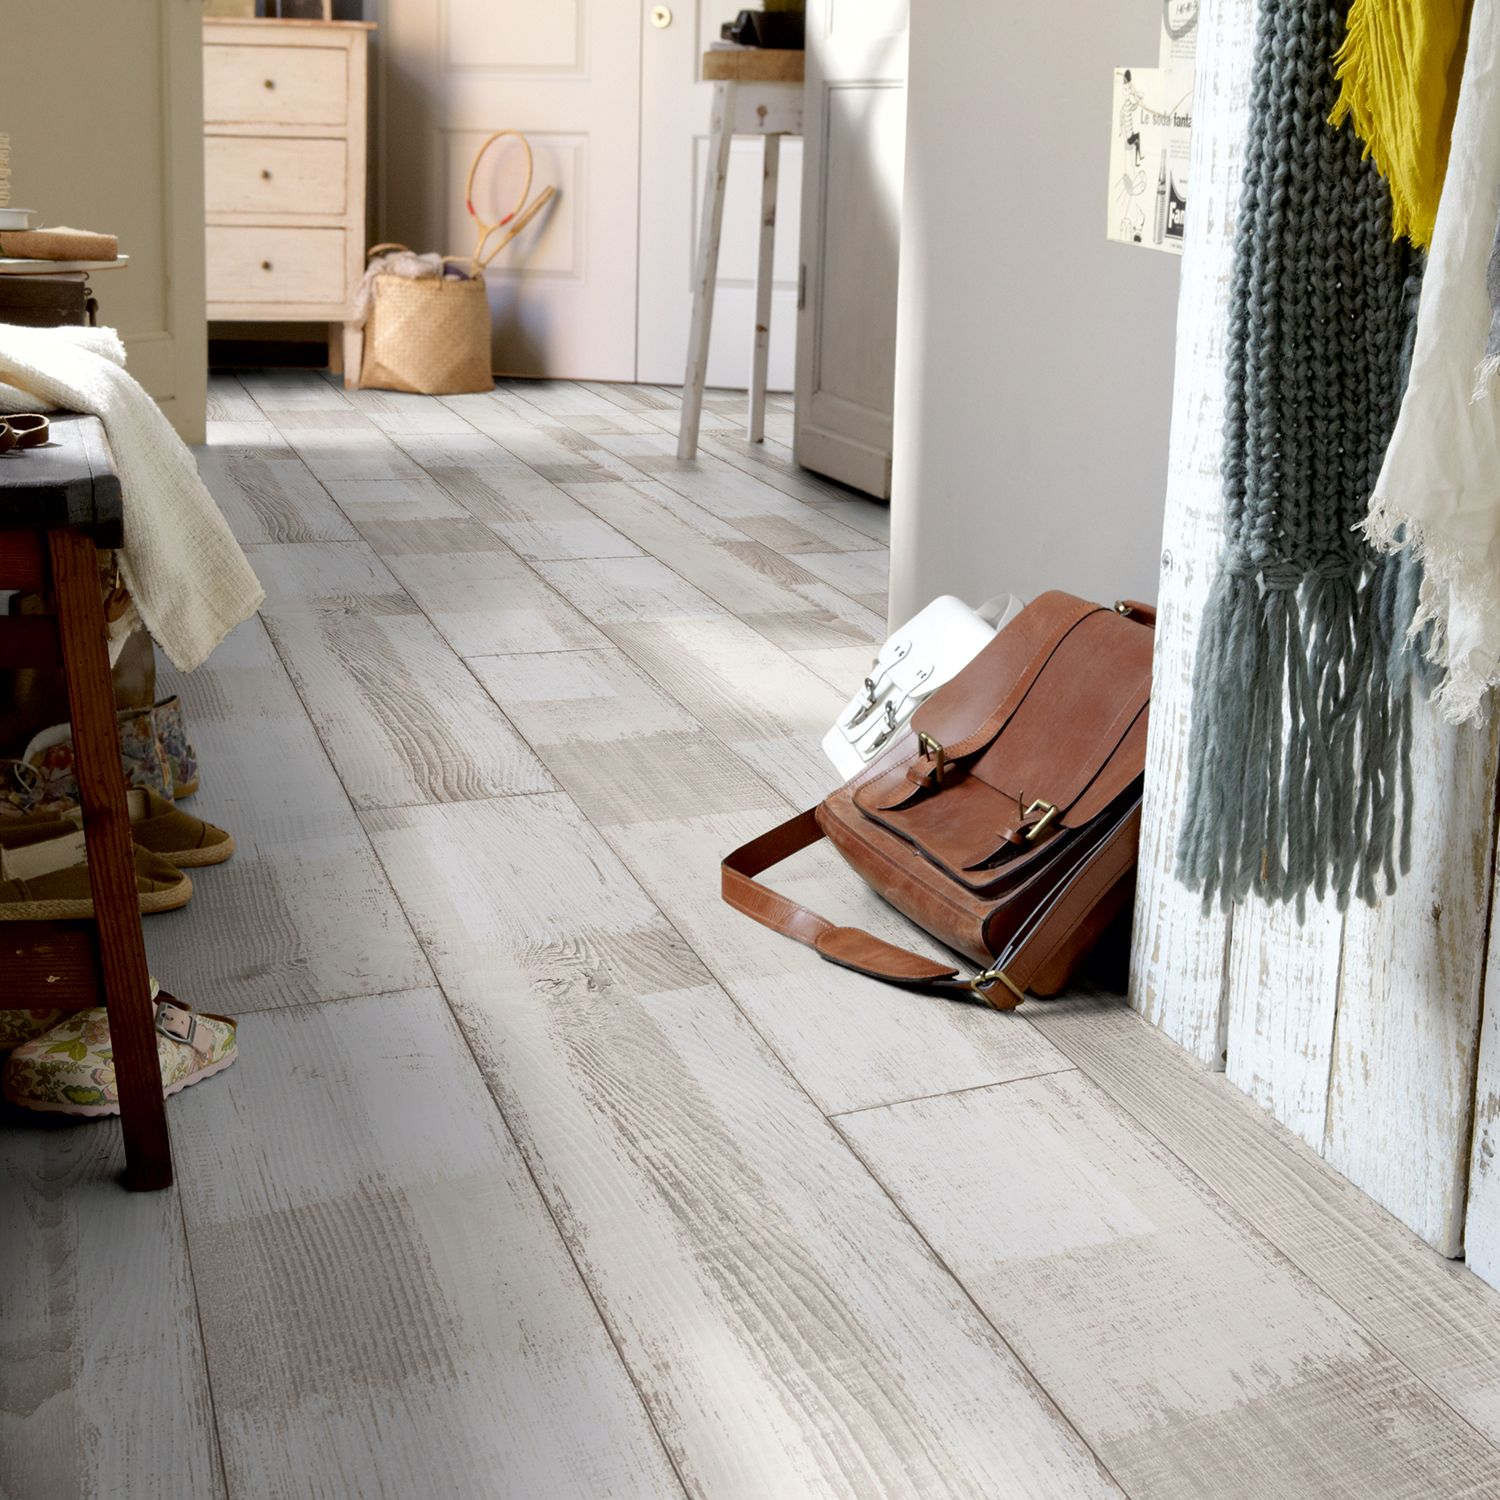 Rhino Style Patched White Wood Effect Vinyl Flooring